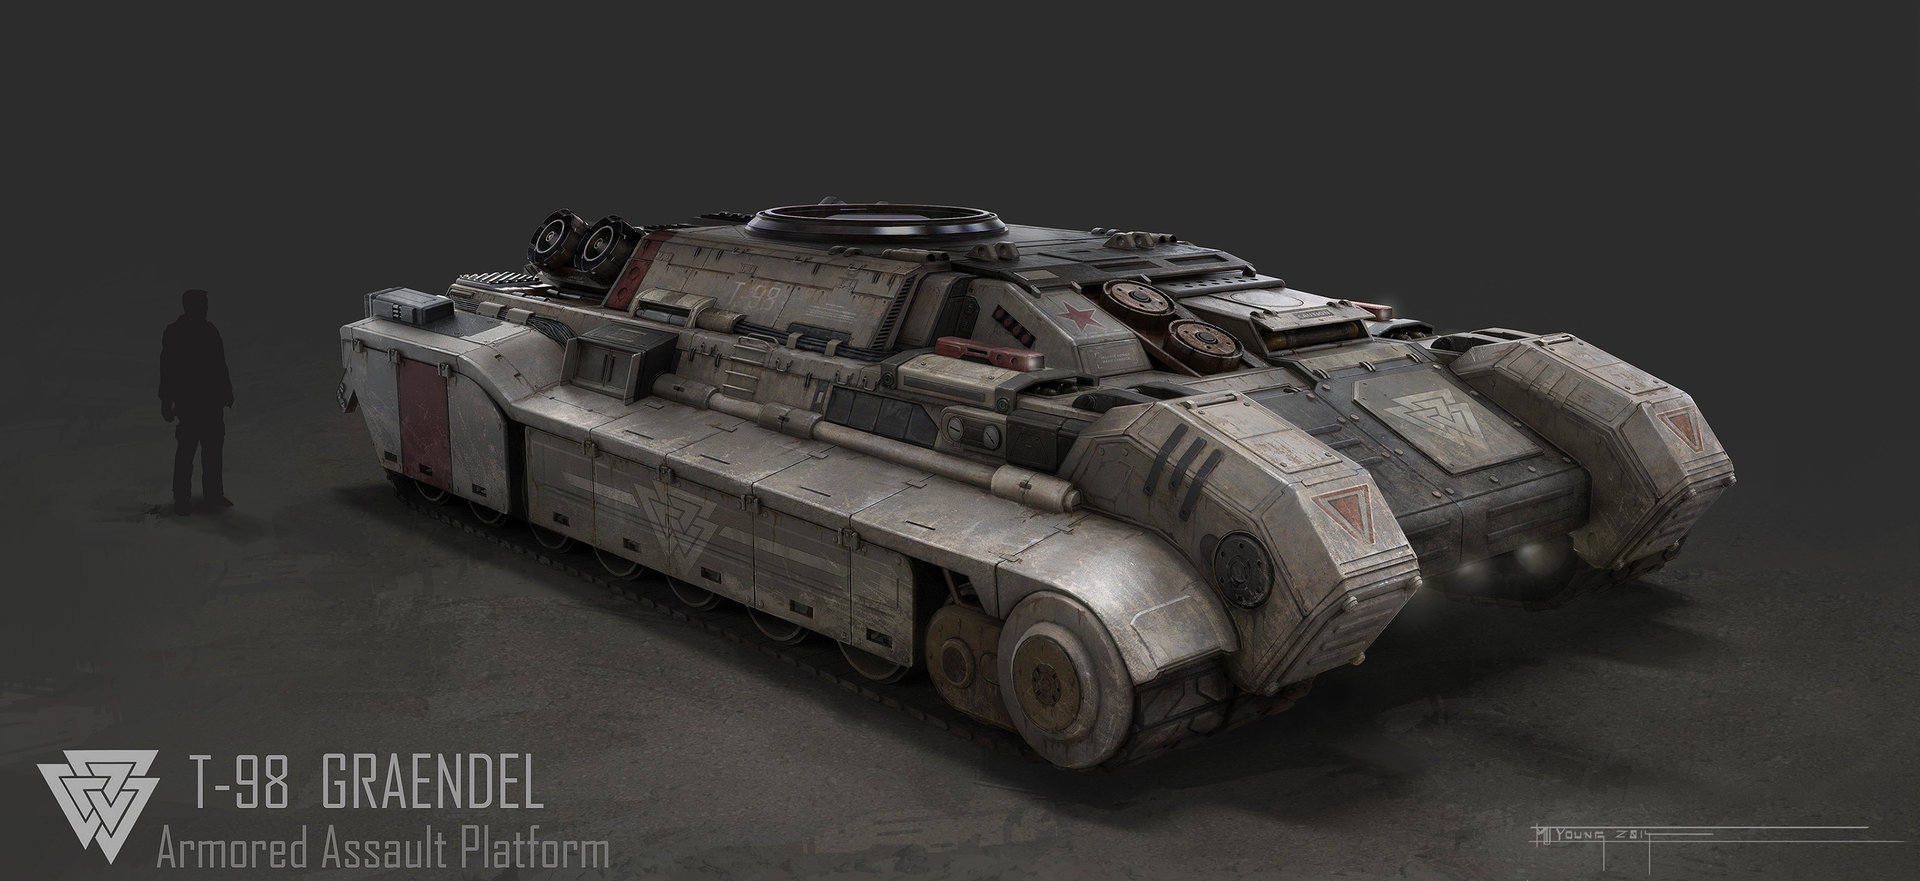 Muyoung kim 3 armor graendal concept front wo turret